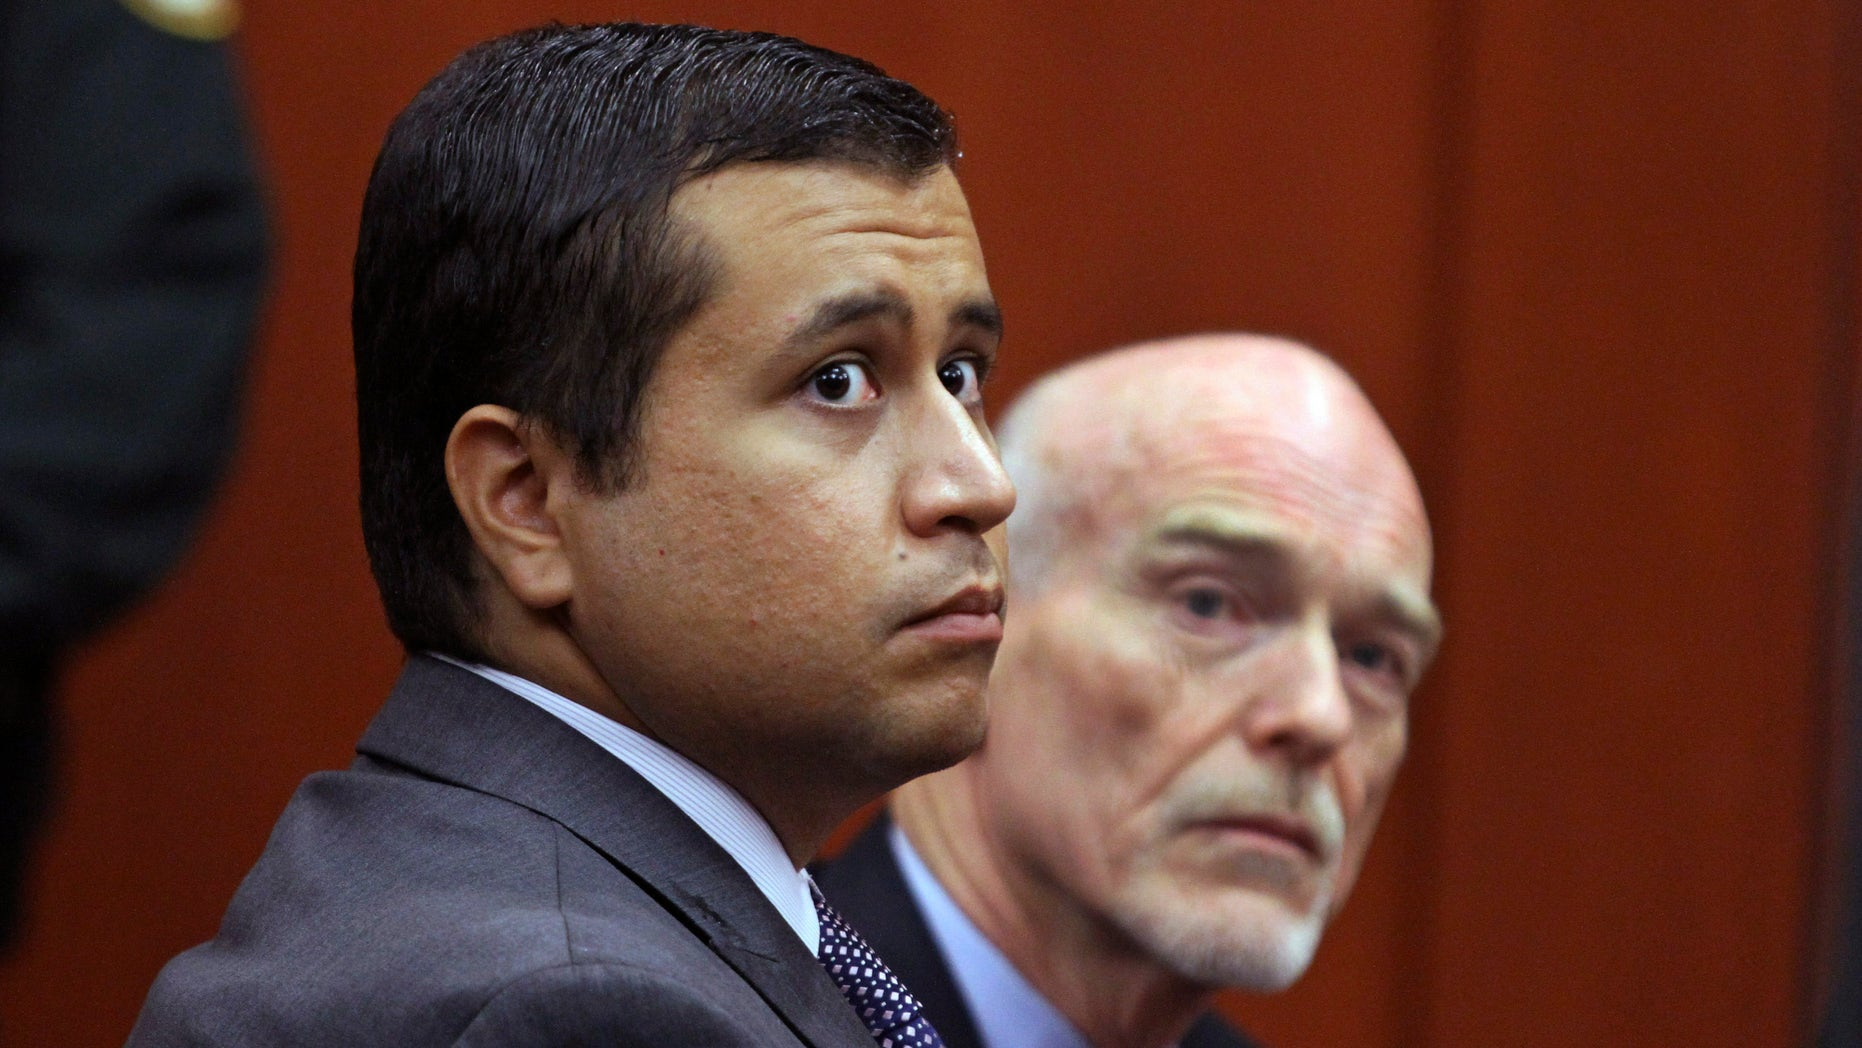 June 29, 2012: In this file photo, George Zimmerman, left, and attorney Don West appear before Circuit Judge Kenneth R. Lester, Jr. during a bond hearing at the Seminole County Criminal Justice Center in Sanford, Fla.